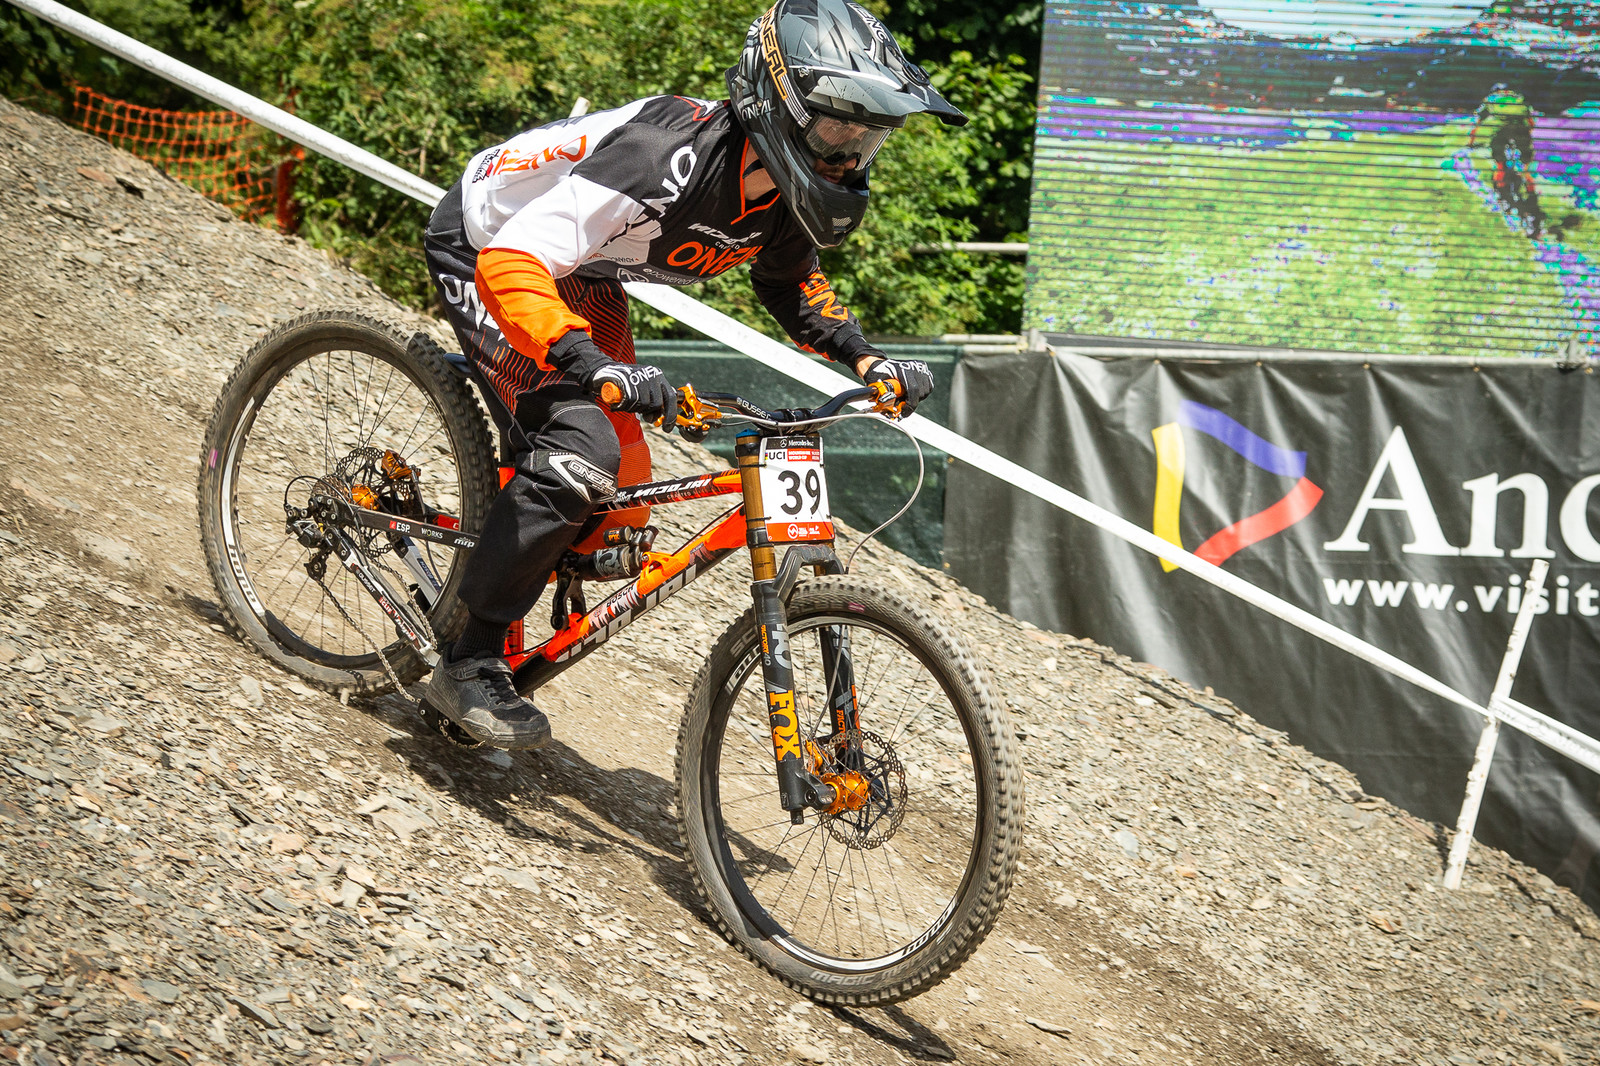 George Gannicott Nicolai - G-Out Project - Andorra World Cup DH - Mountain Biking Pictures - Vital MTB